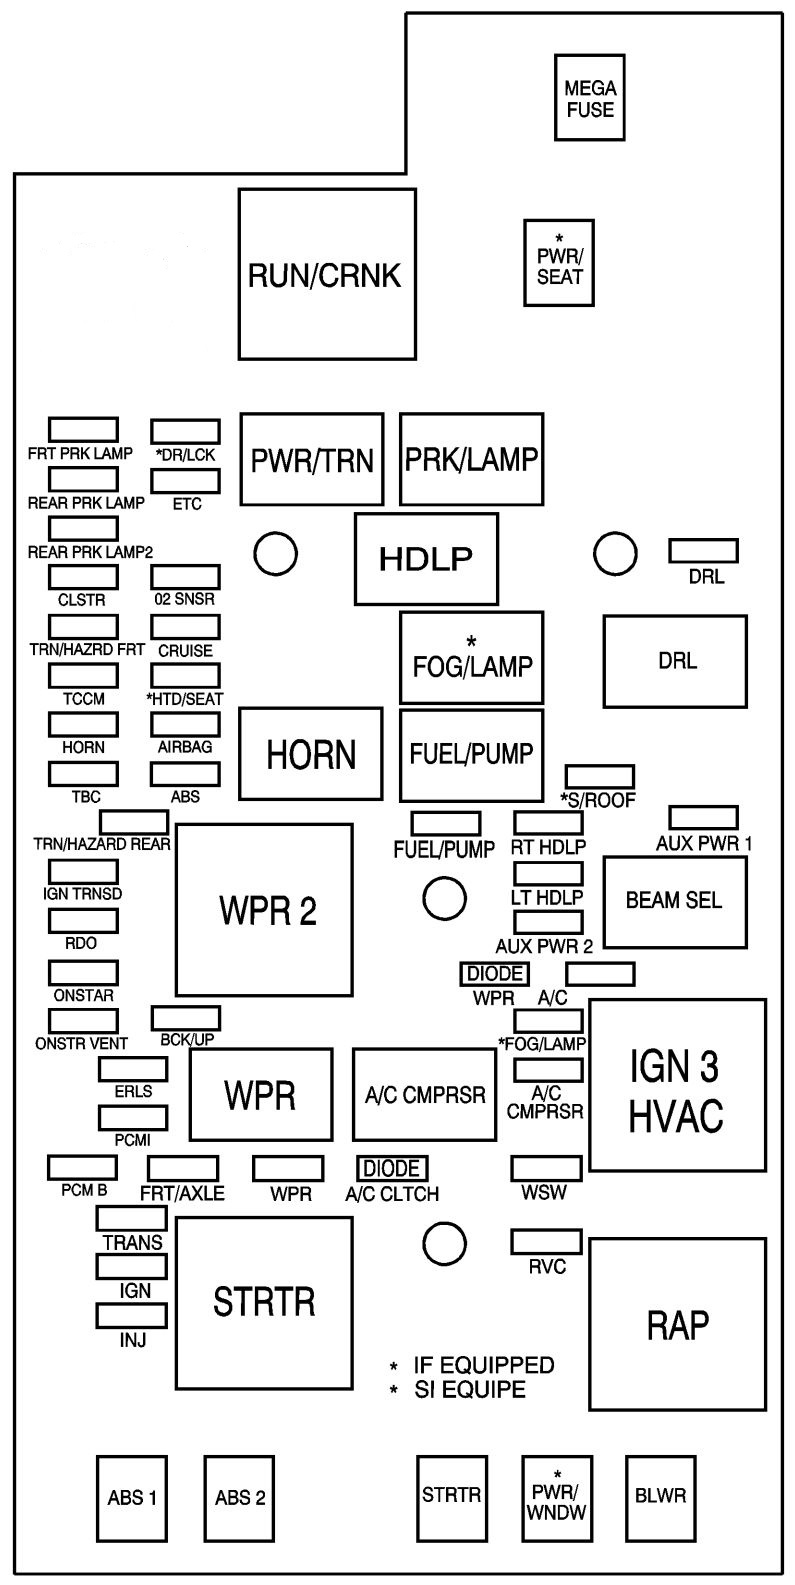 hight resolution of 2012 impala fuse diagram wiring diagram detailed 1998 chevy silverado wiring diagram 2012 silverado fuse diagram